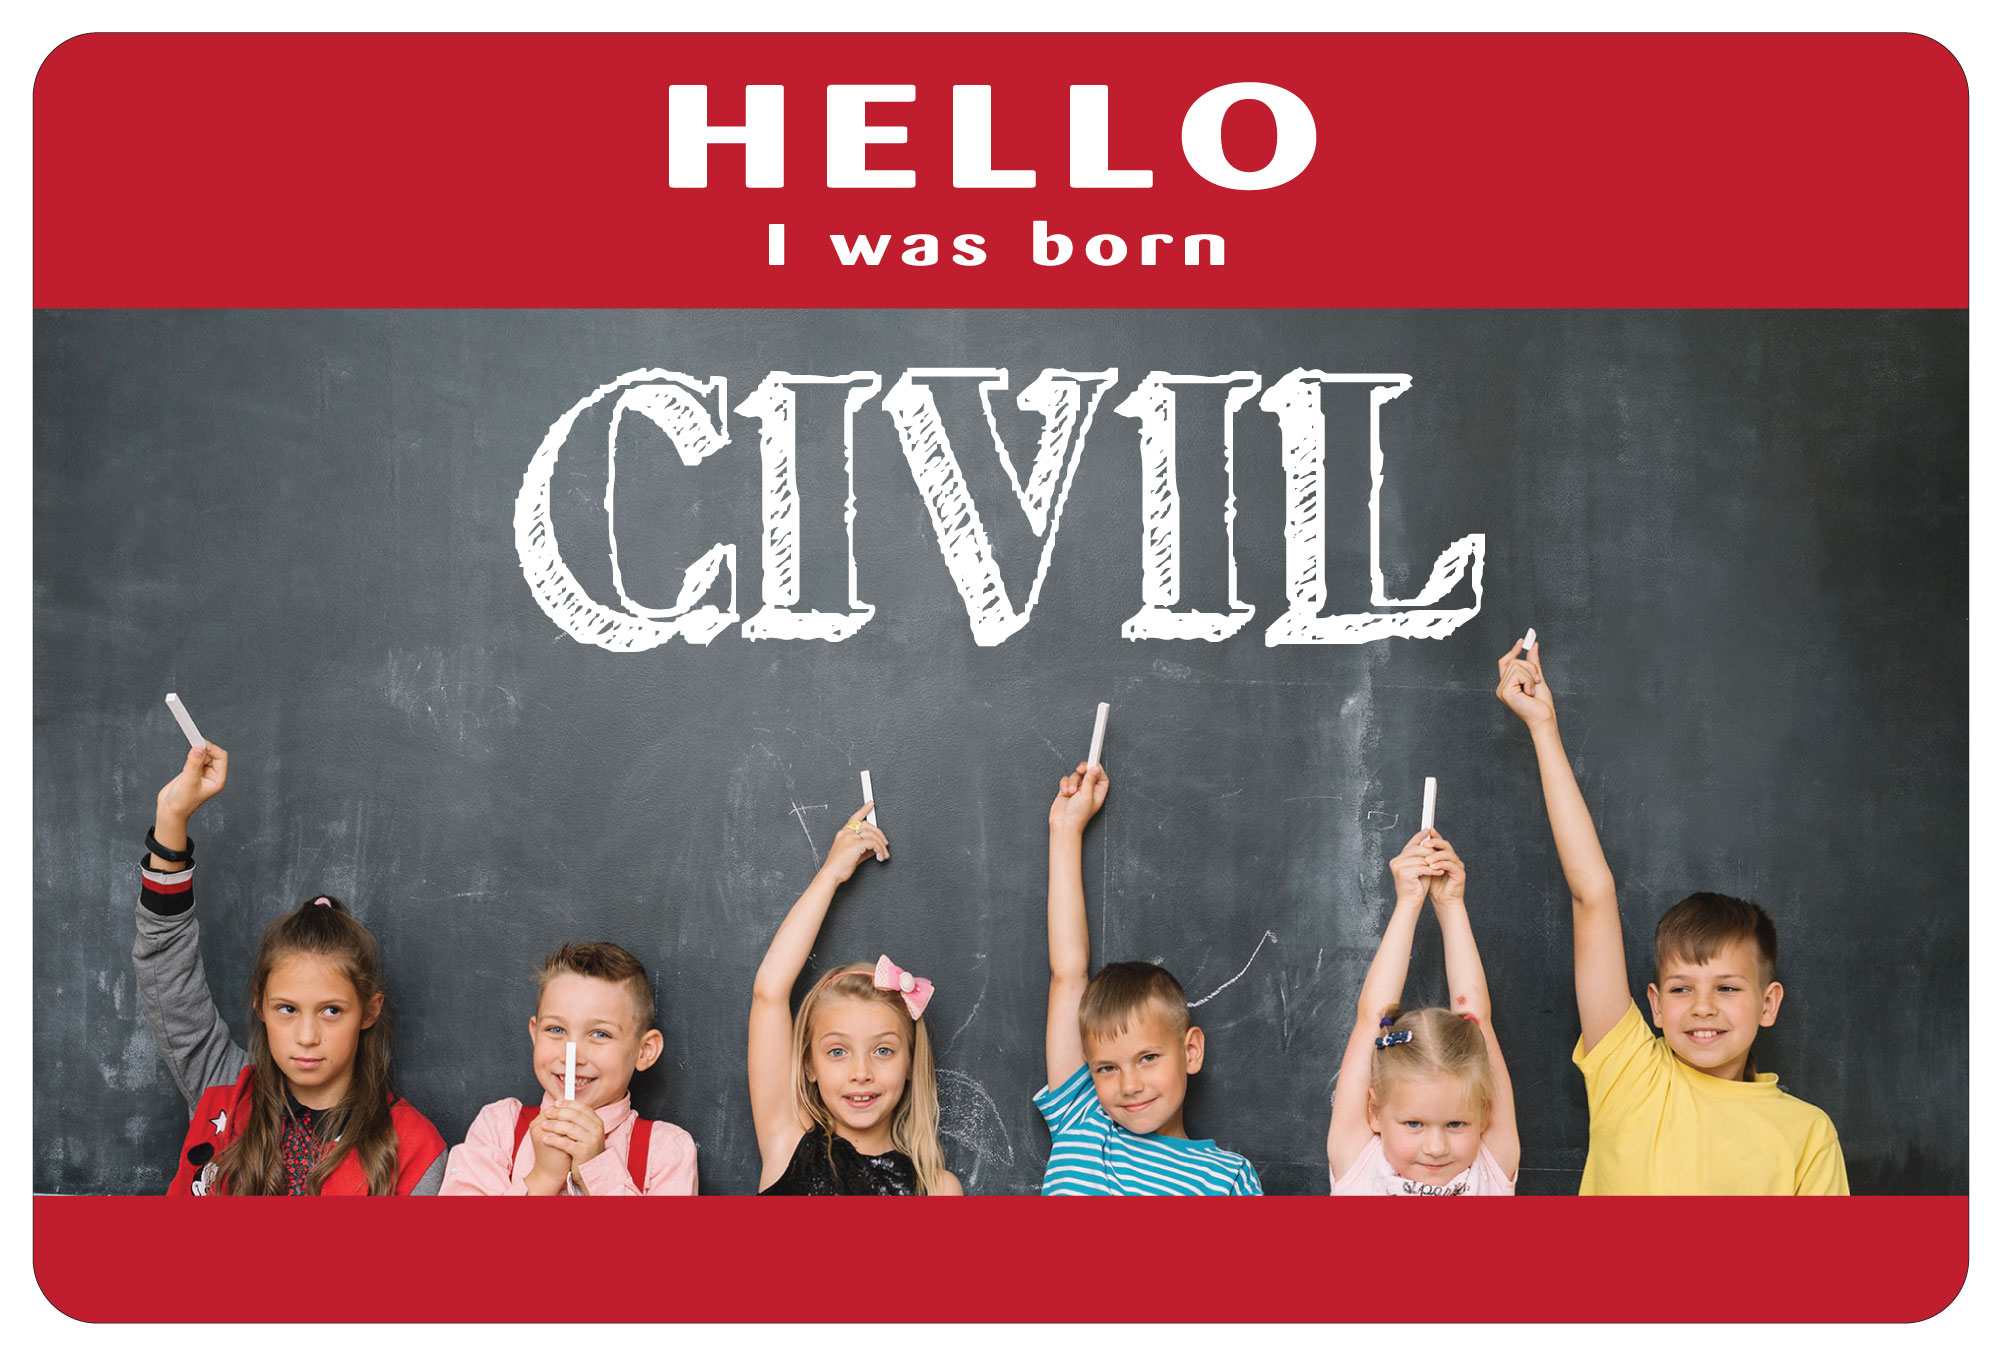 Civil. - Lakewood Forward members model civil discourse, at our events and in our community.We listen to different perspectives with respect and empathy.We embrace productive discussion and learning in a polite and courteous manner